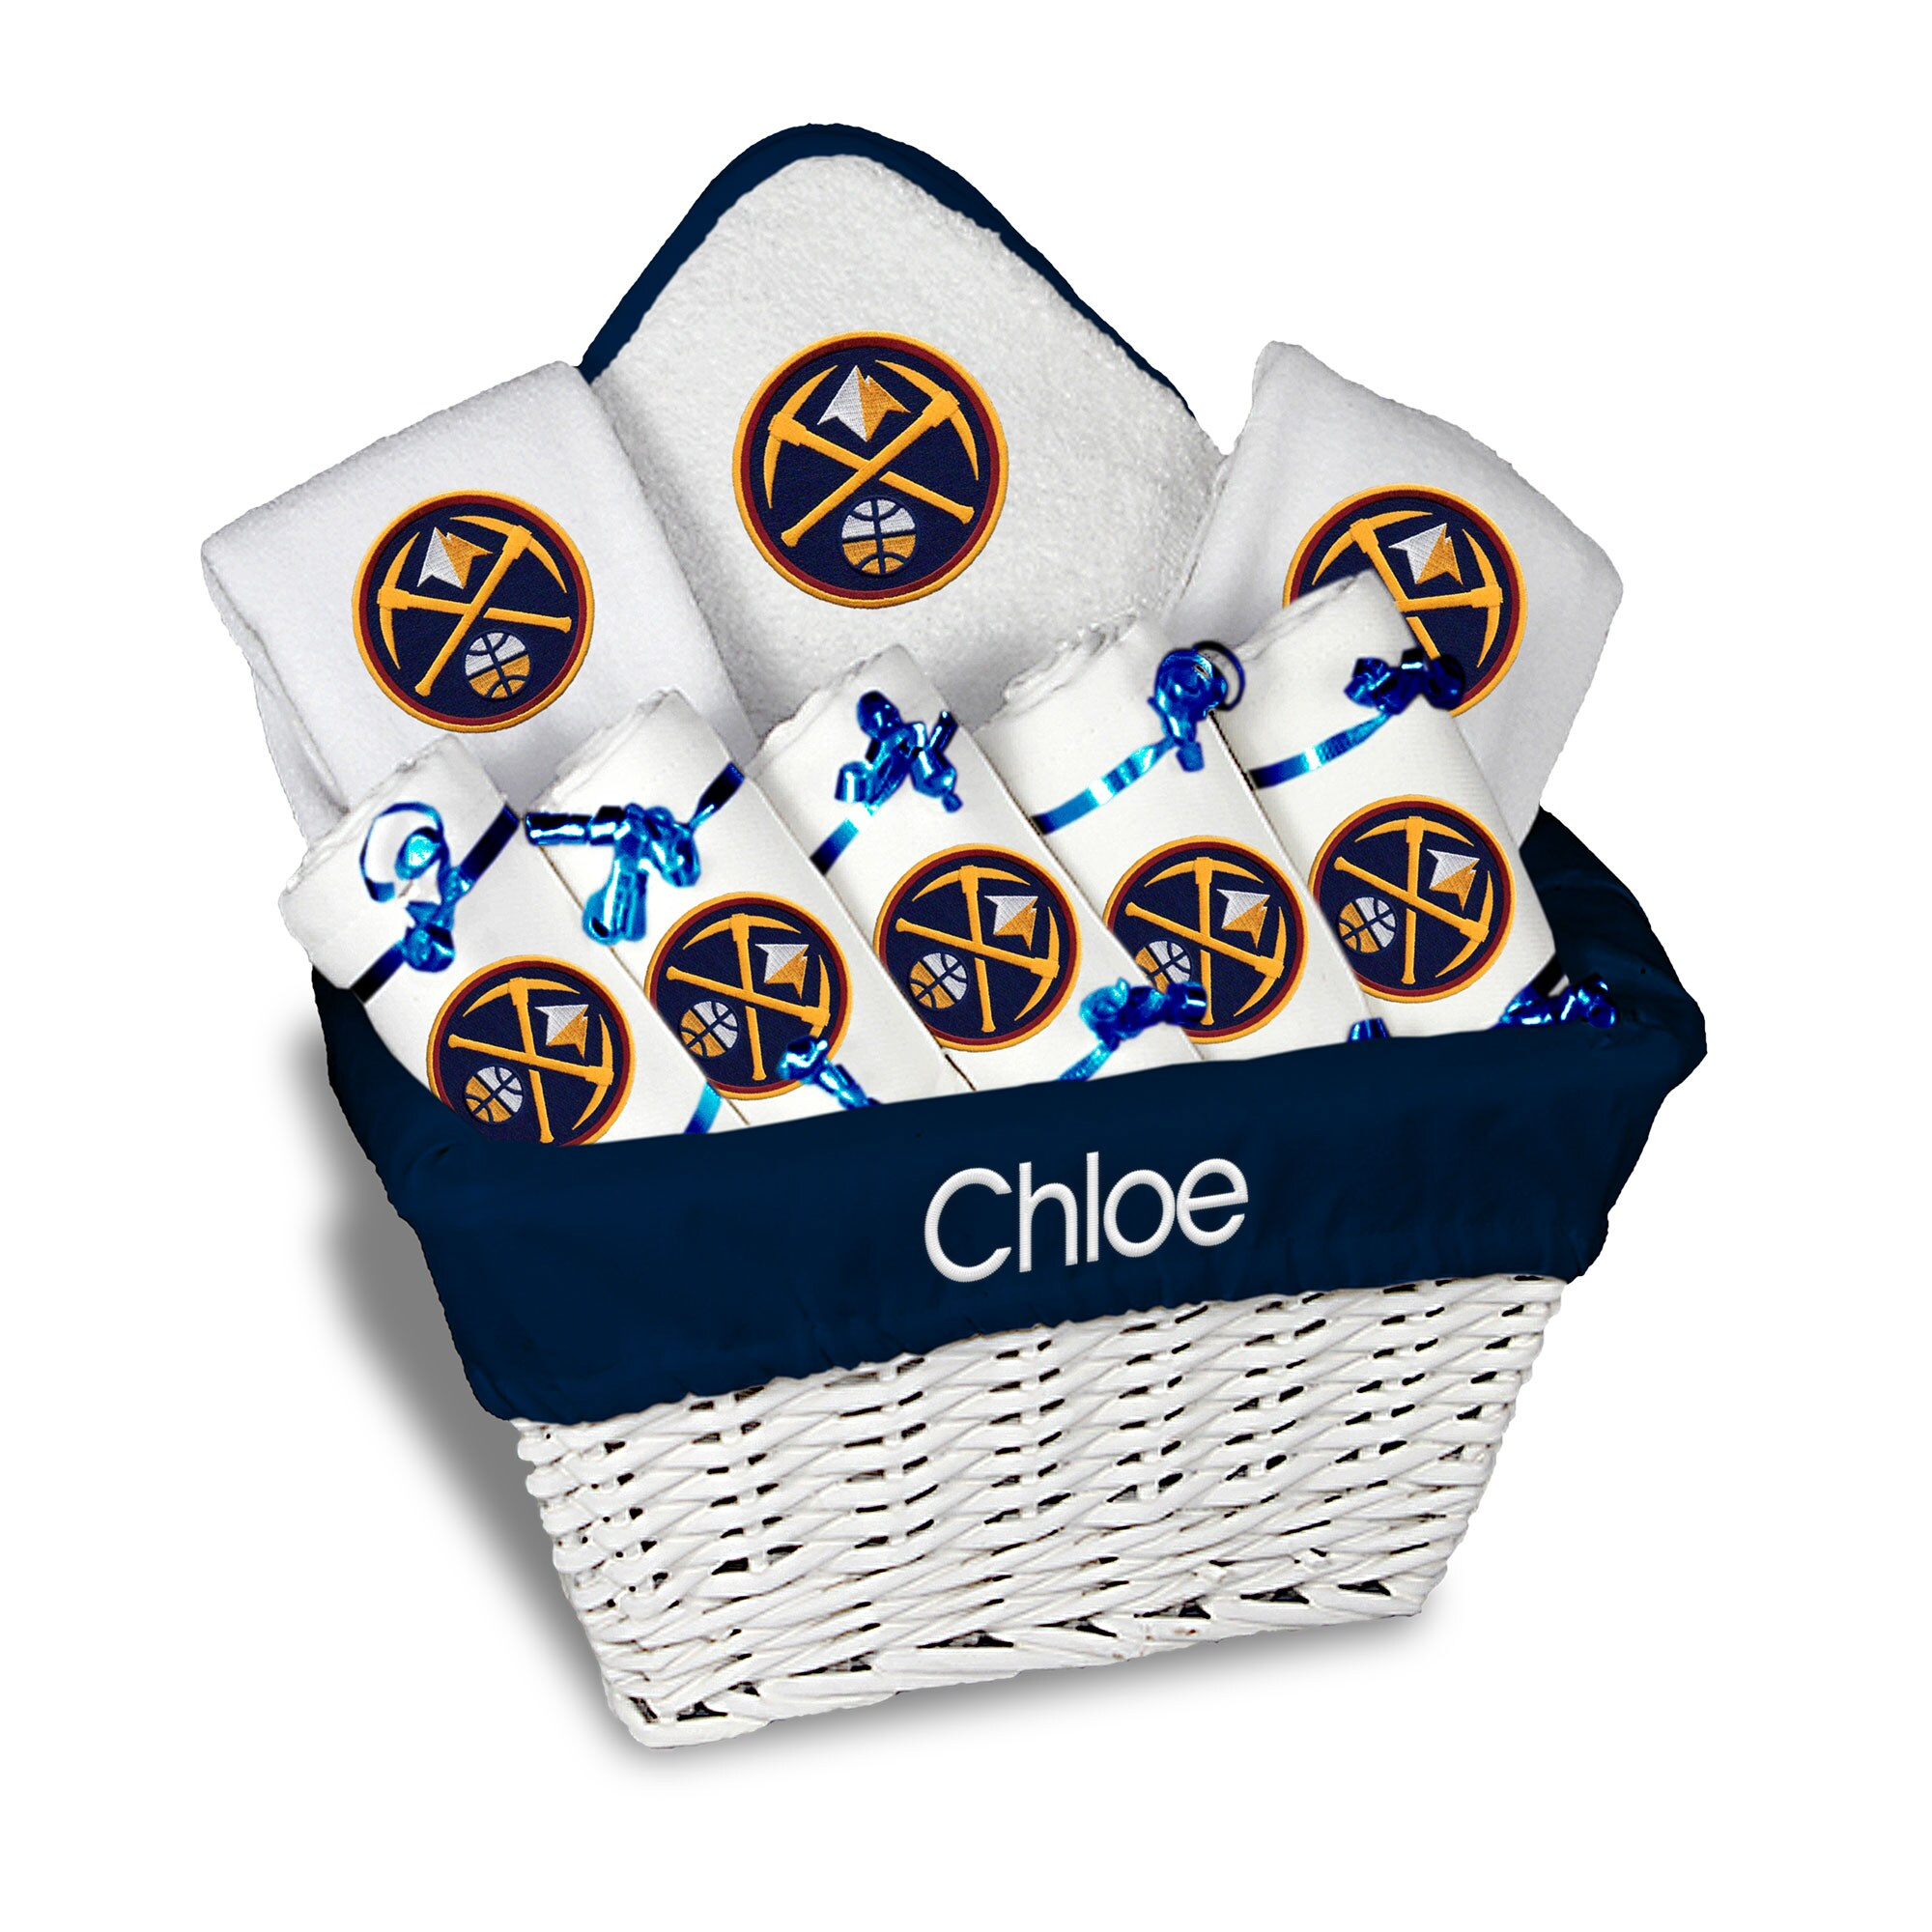 Denver Nuggets Newborn & Infant Personalized Large Gift Basket - White